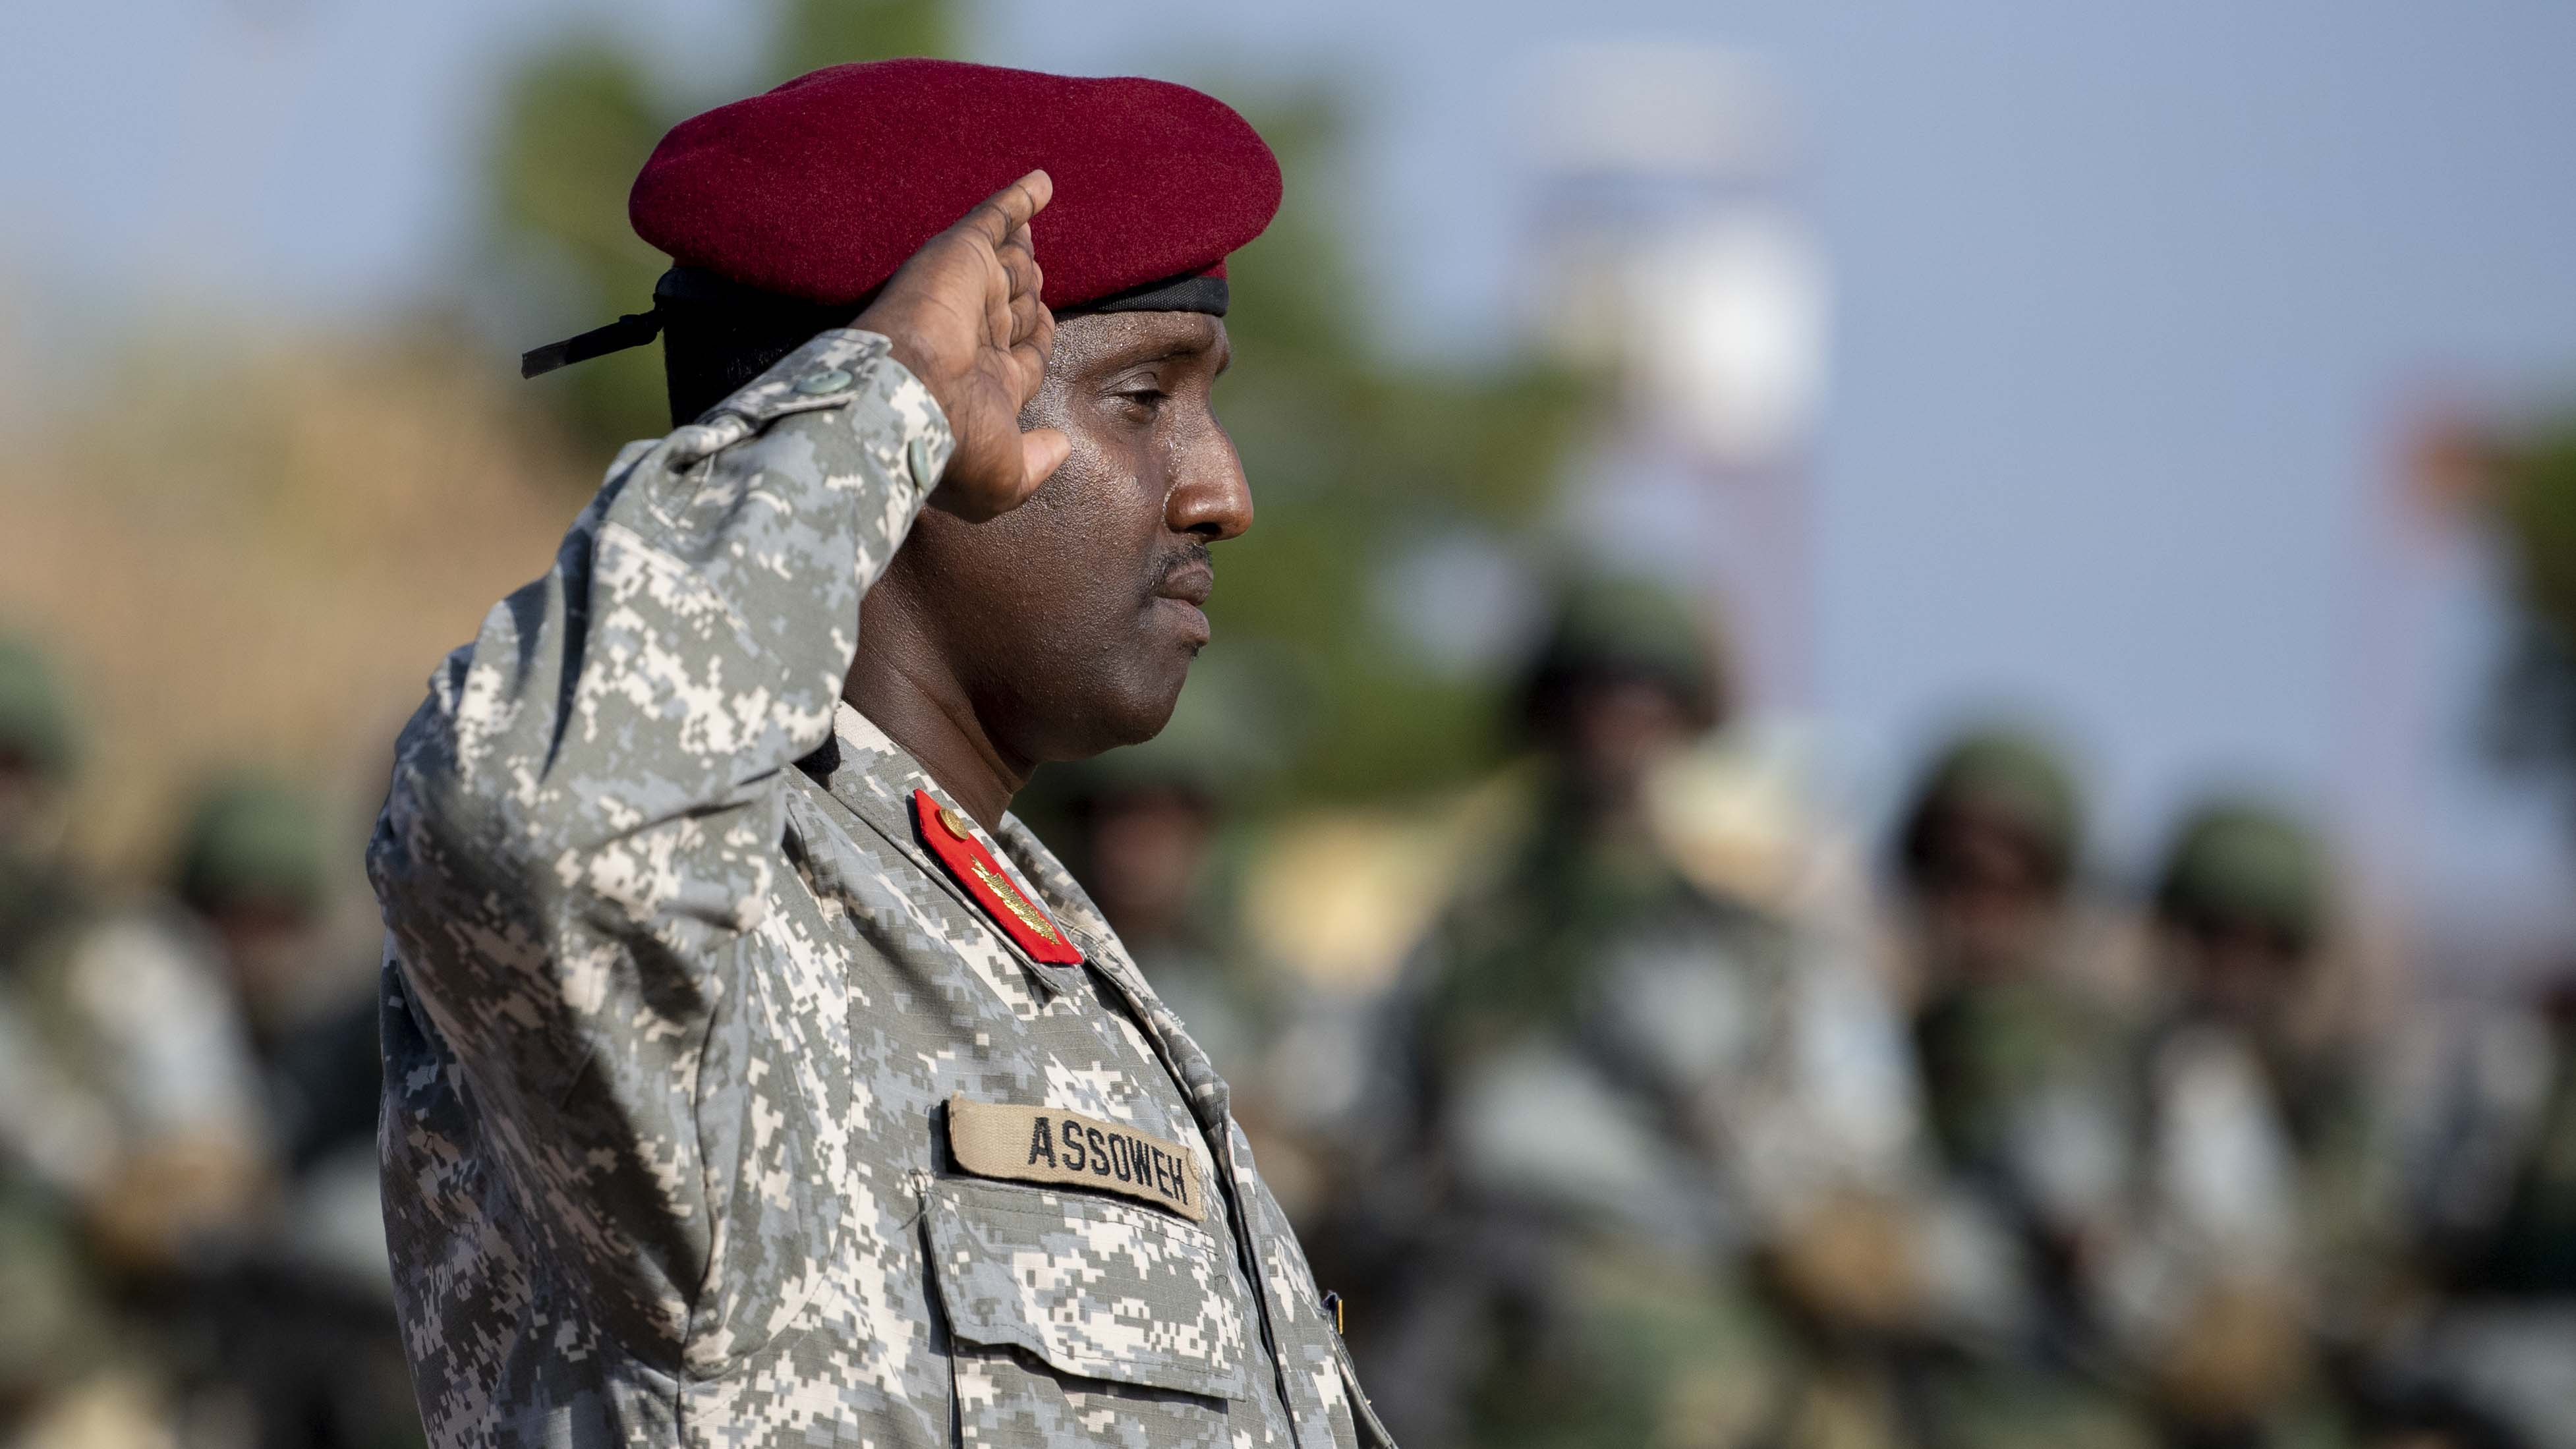 Djiboutian Maj. Mohamed Assowen, commander of the Rapid Intervention Battalion renders his first salute during the (RIB) change of command, in Djibouti, Oct. 31, 2019. Assowen assumed command of the RIB from Djiboutian Capt. Omar Ali Hassan. (U.S. Air Force photo by Staff Sgt. J.D. Strong II)